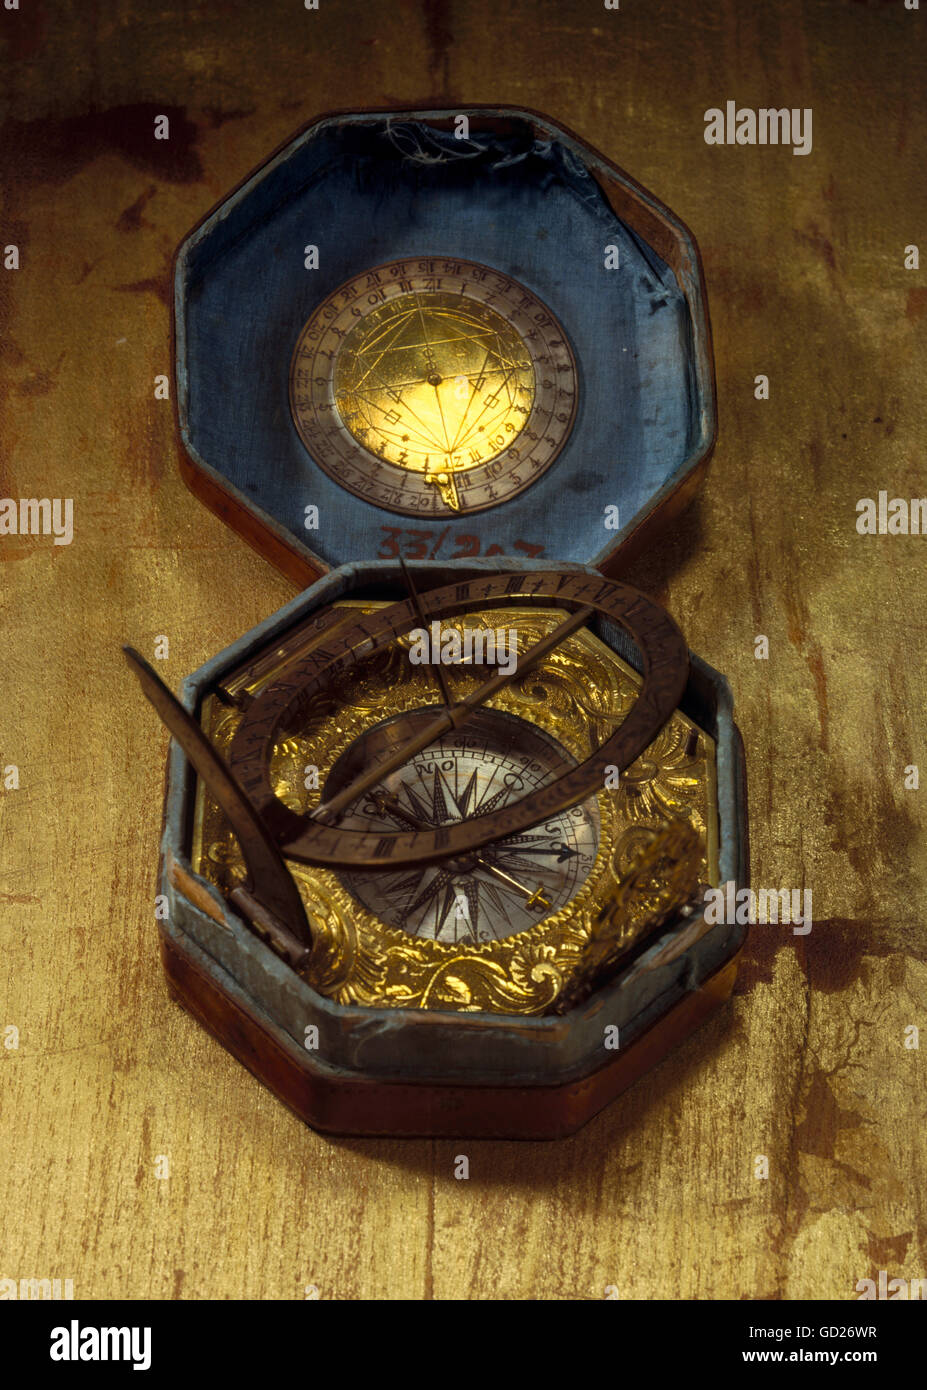 clocks, sundials, sundial in octagonal leather case, diameter: 9,3 cm, Augsburg or Nuremberg, Germany, 2nd half Stock Photo